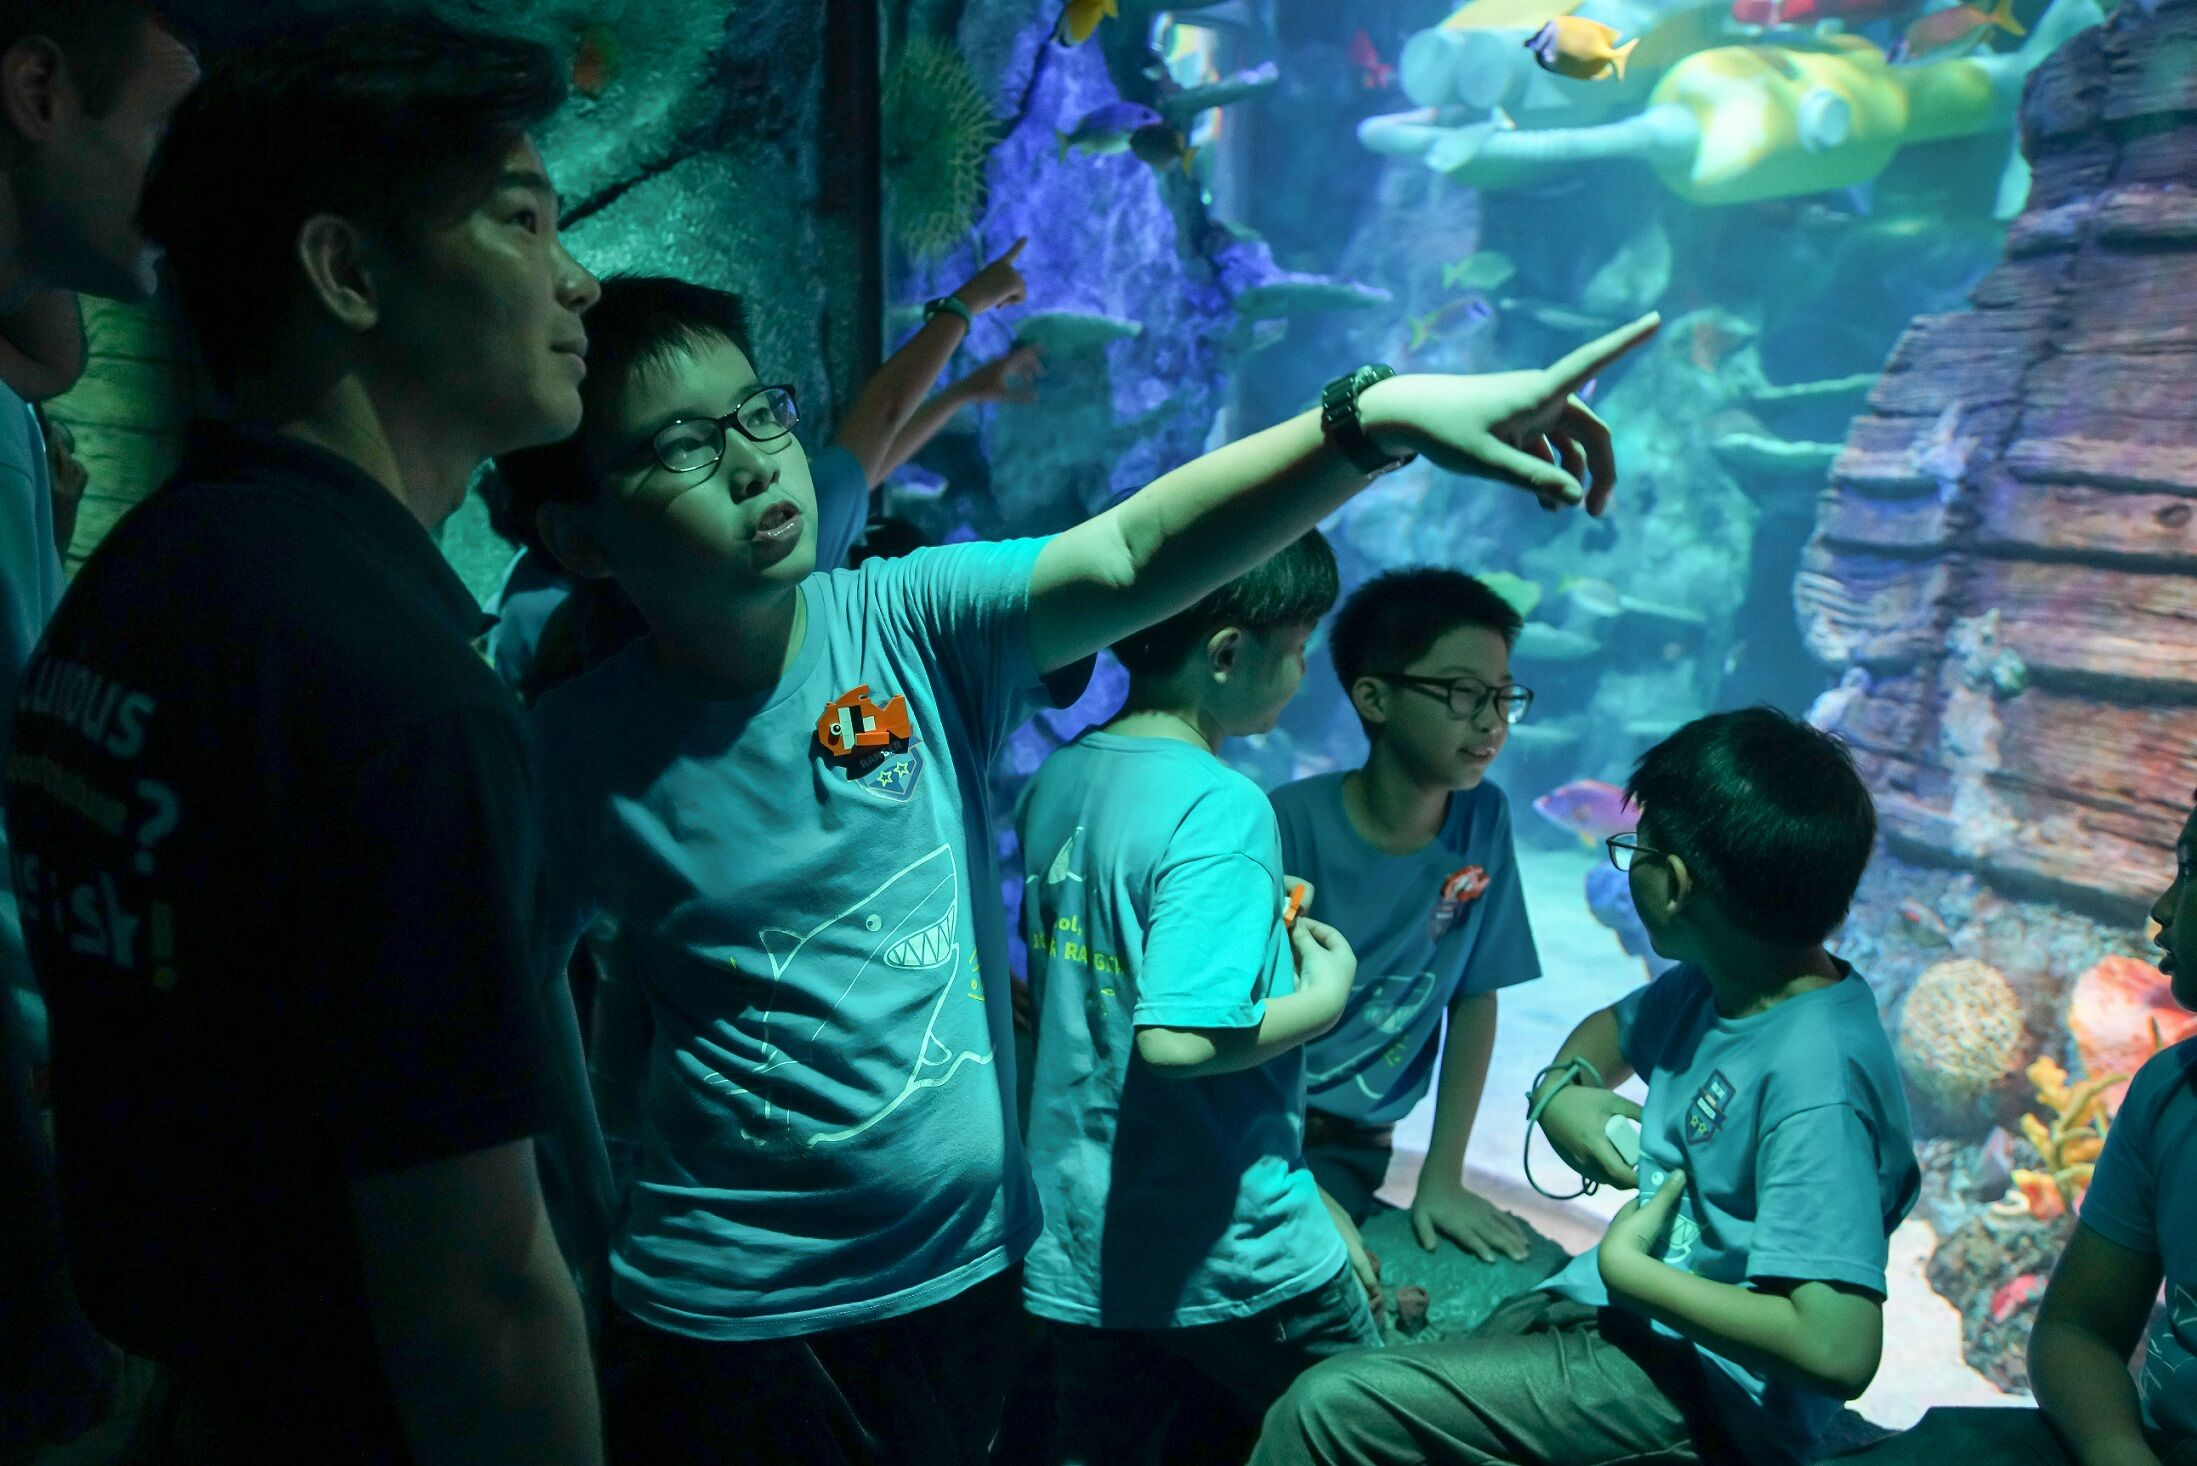 SEA LIFE Malaysia, an Up-Close Ocean Experience, Through Magical Storytelling, Interactive Displays And Hands-On Encounters